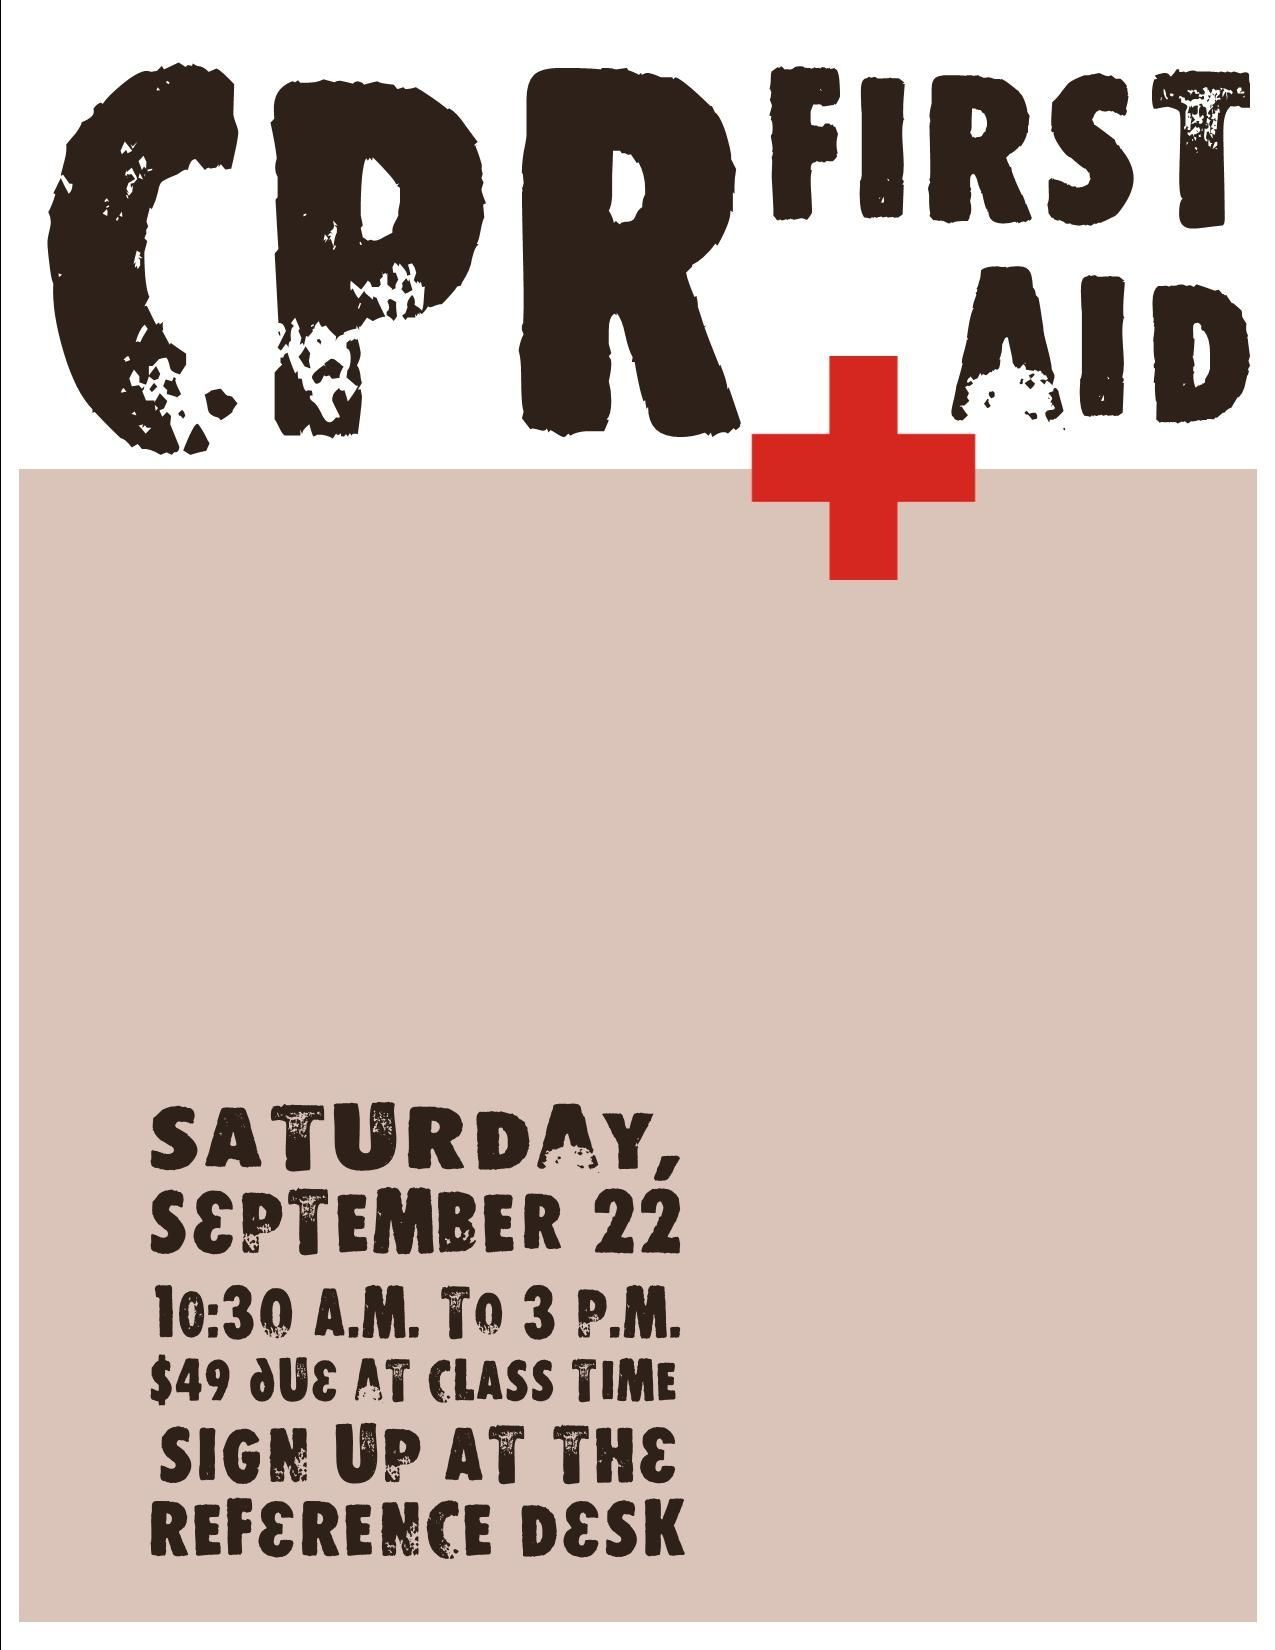 Cpr Flyer Template Printable In 2021 Cpr Cpr Training Flyer